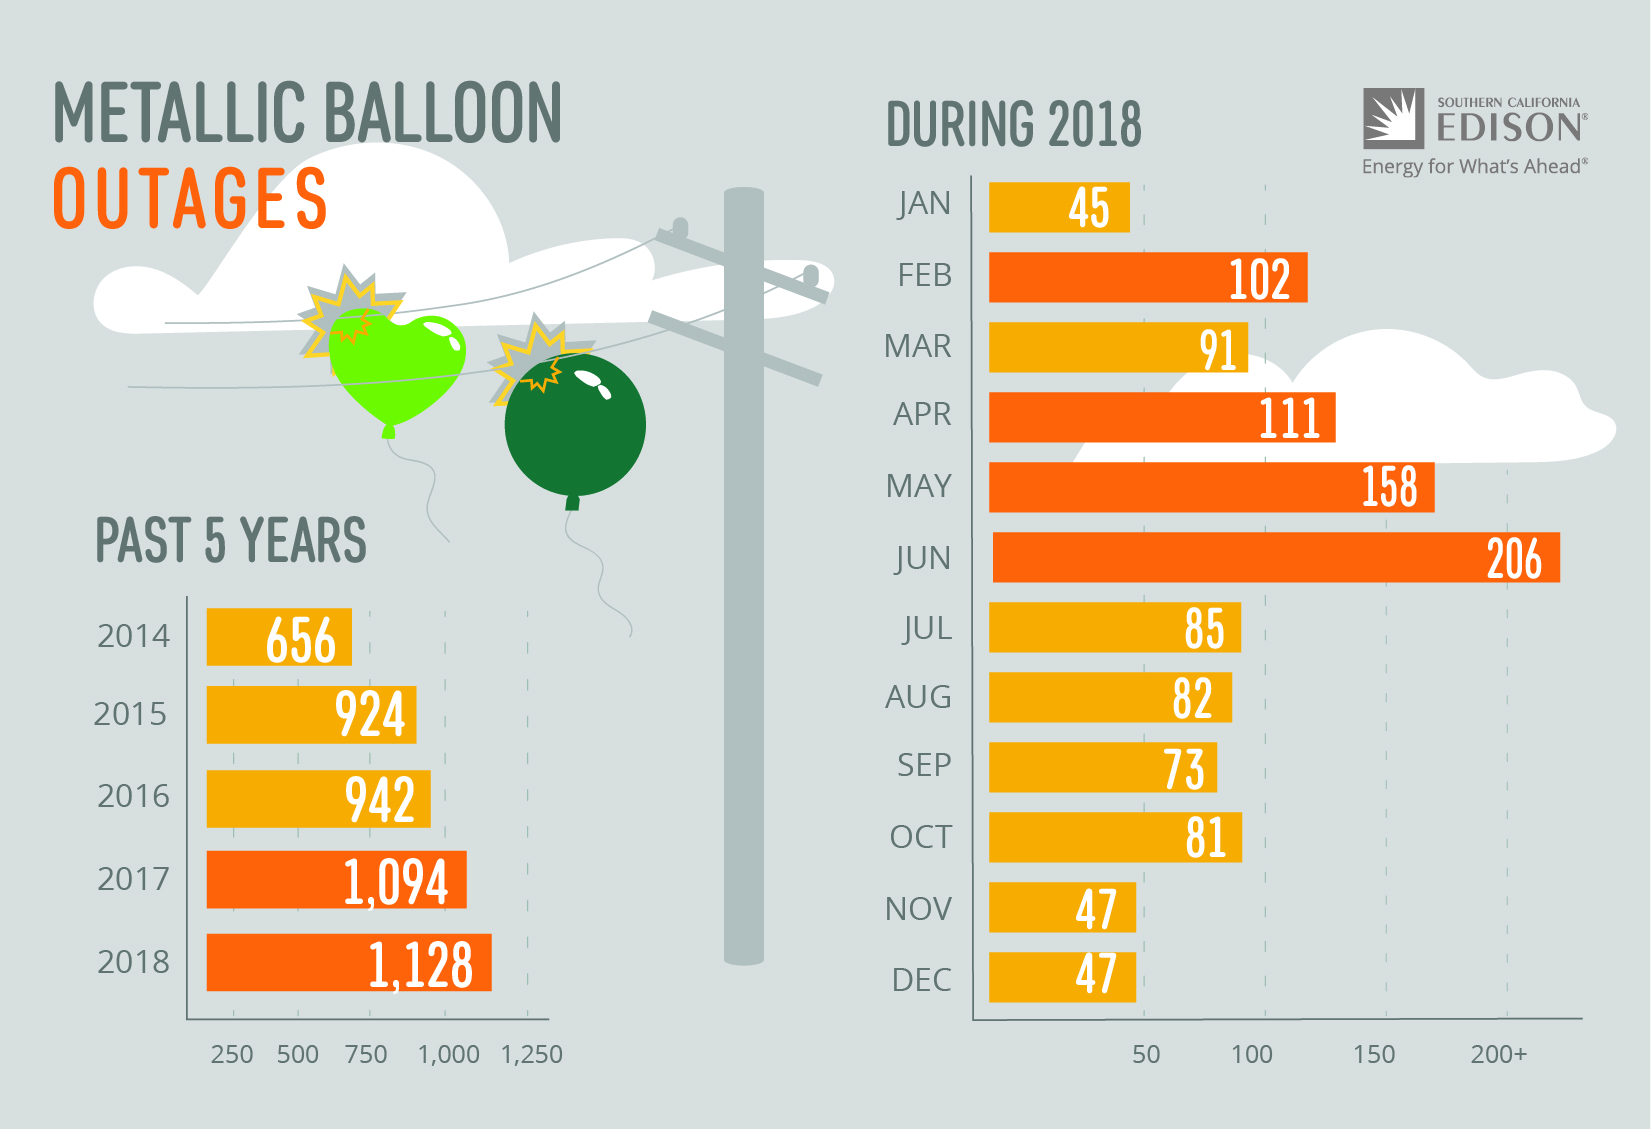 Metallic Balloons Outages - Infographic